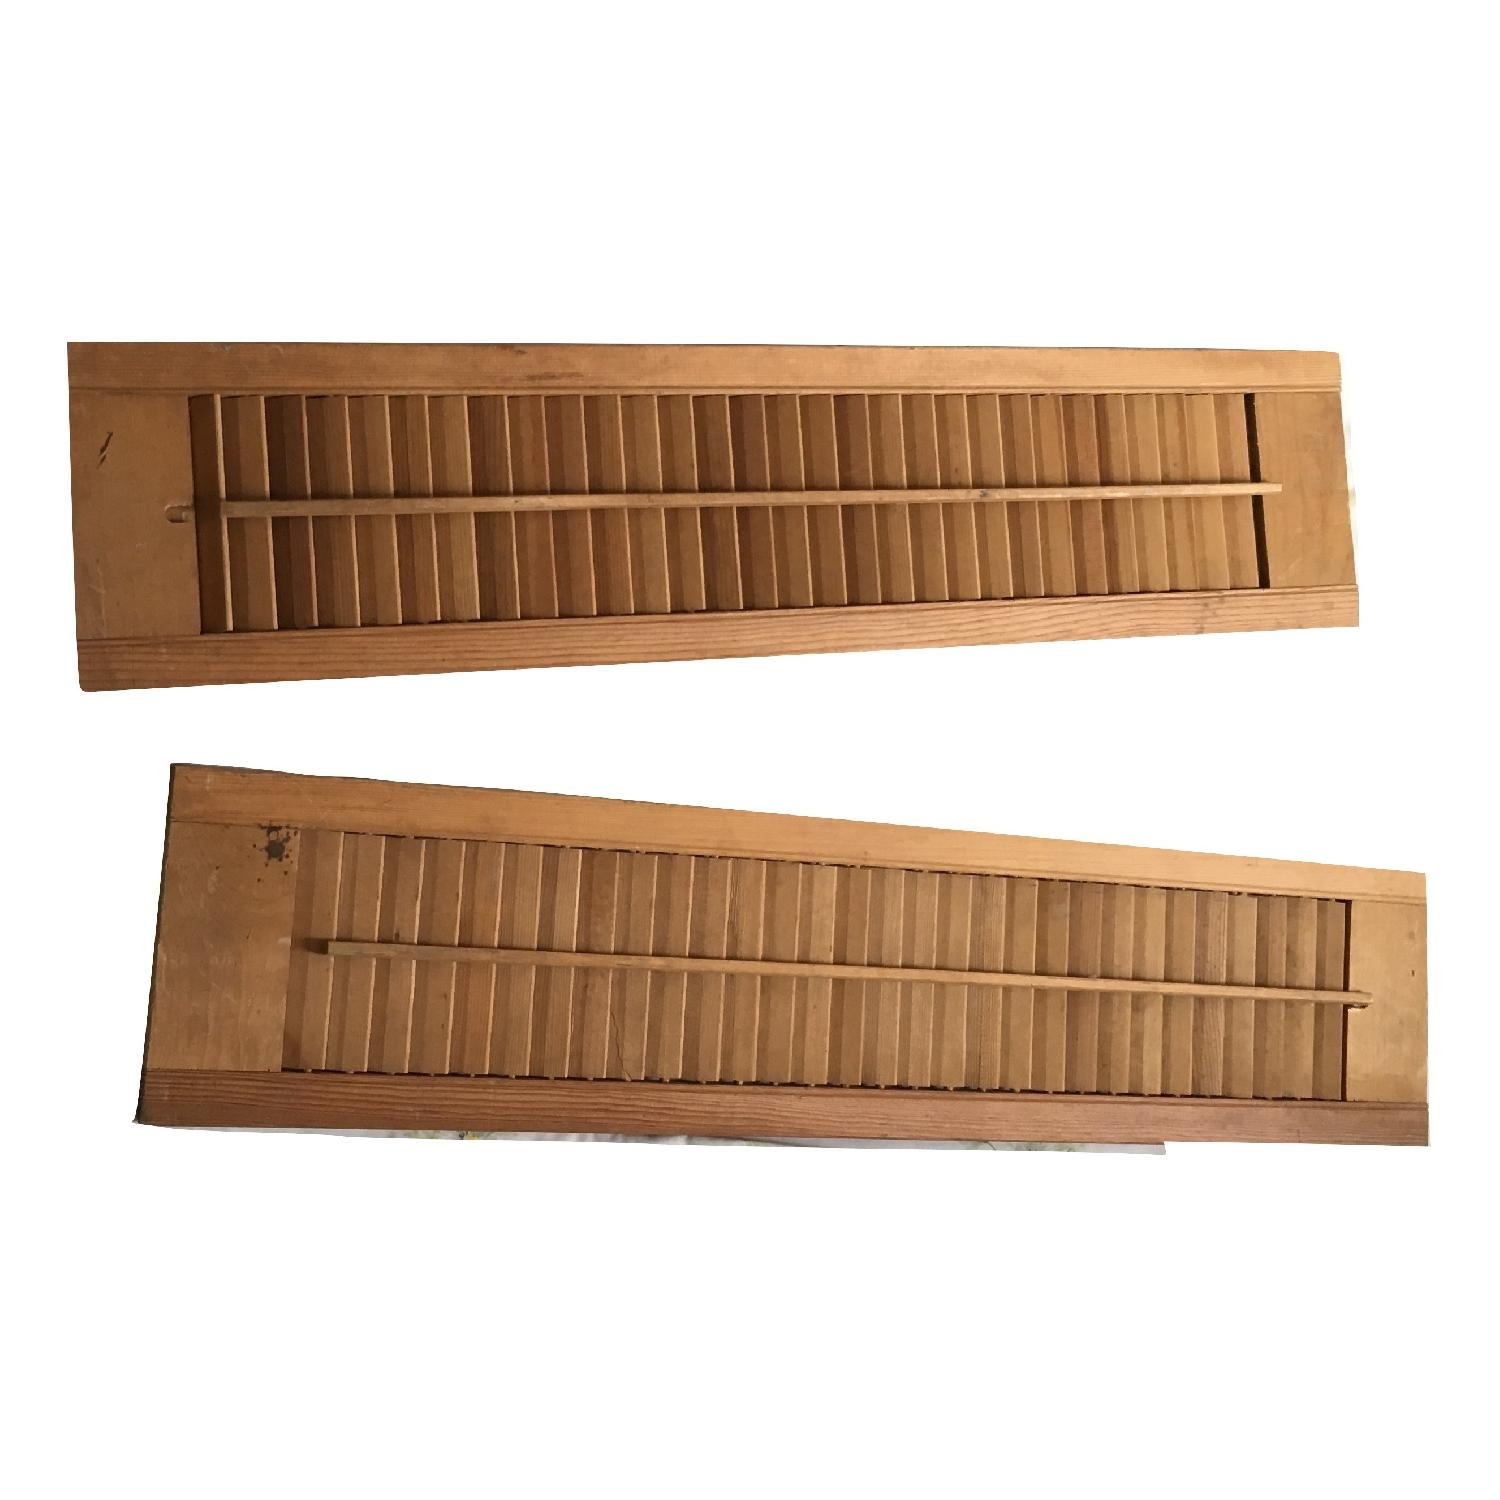 Vintage Small Wood Window Shutters